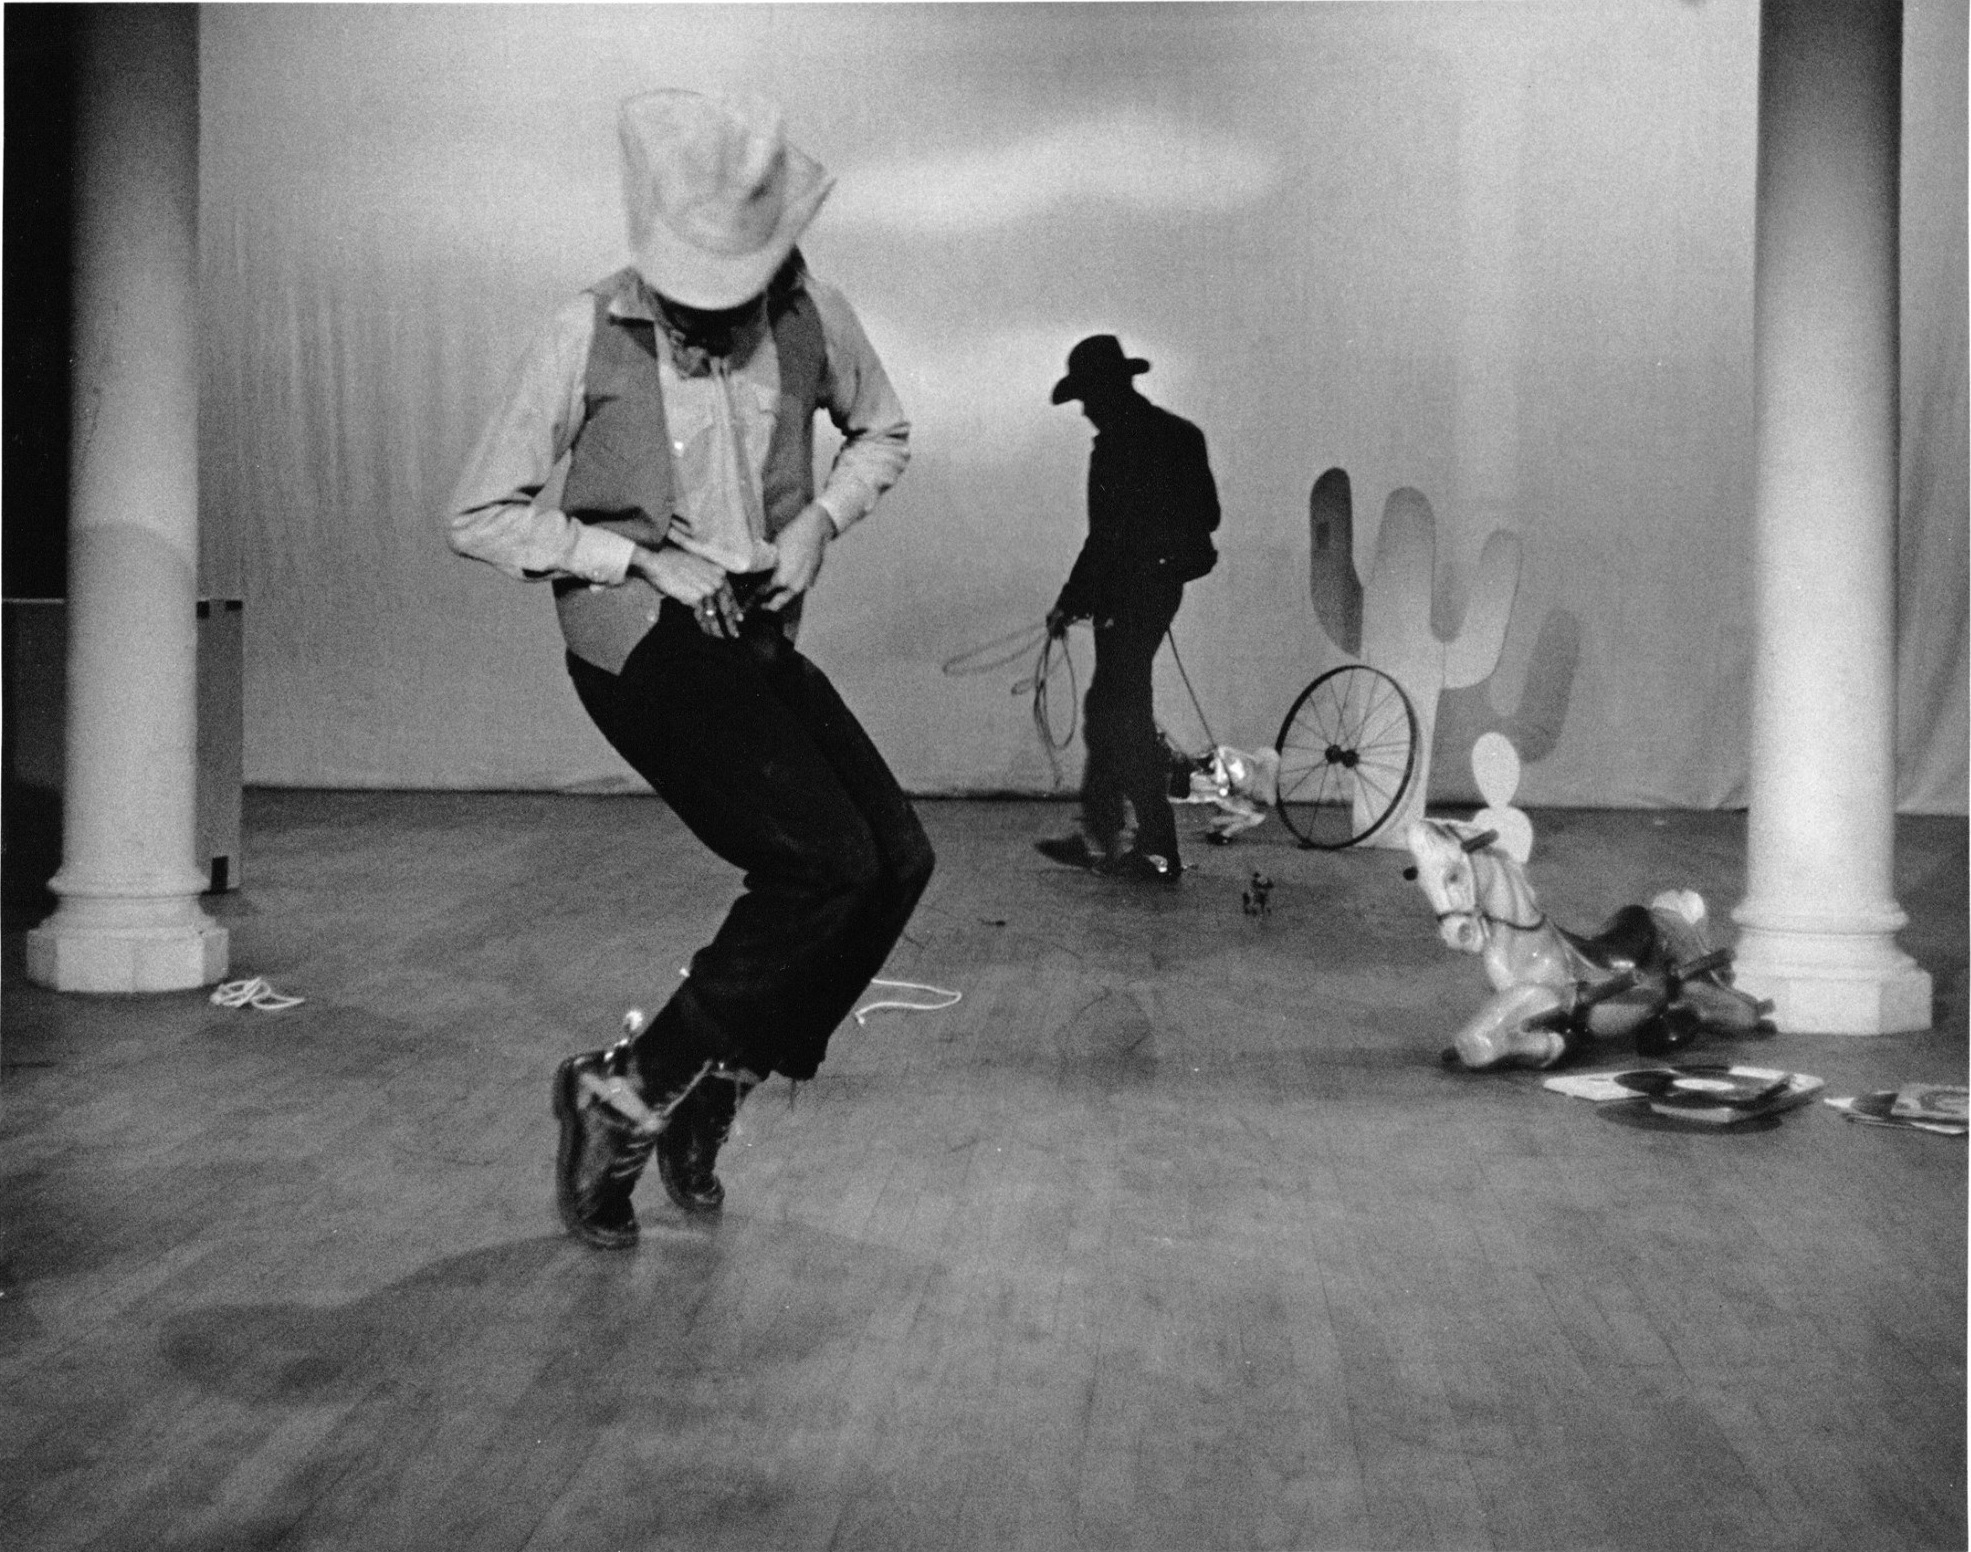 Cowboys, Dreams, and Ladders ,     Fred Holland and Ishmael Houston-Jones, The Kitchen, 1984   Photo: Dona Ann McAdams